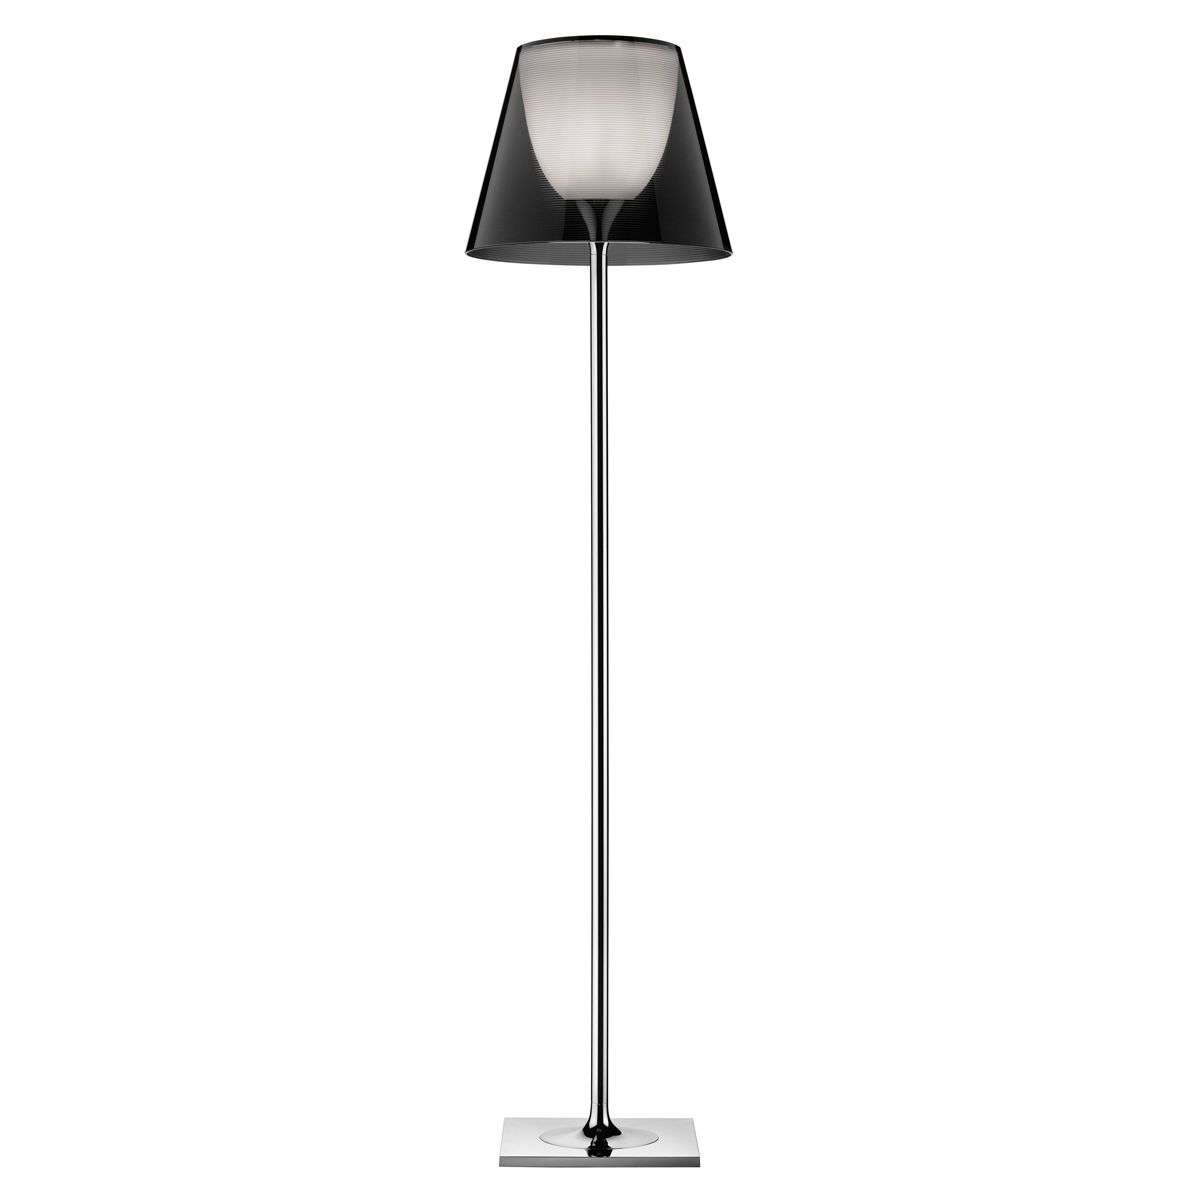 Lampadaire KTRIBE F2 by FLOS aspect moderne-3510134X-35